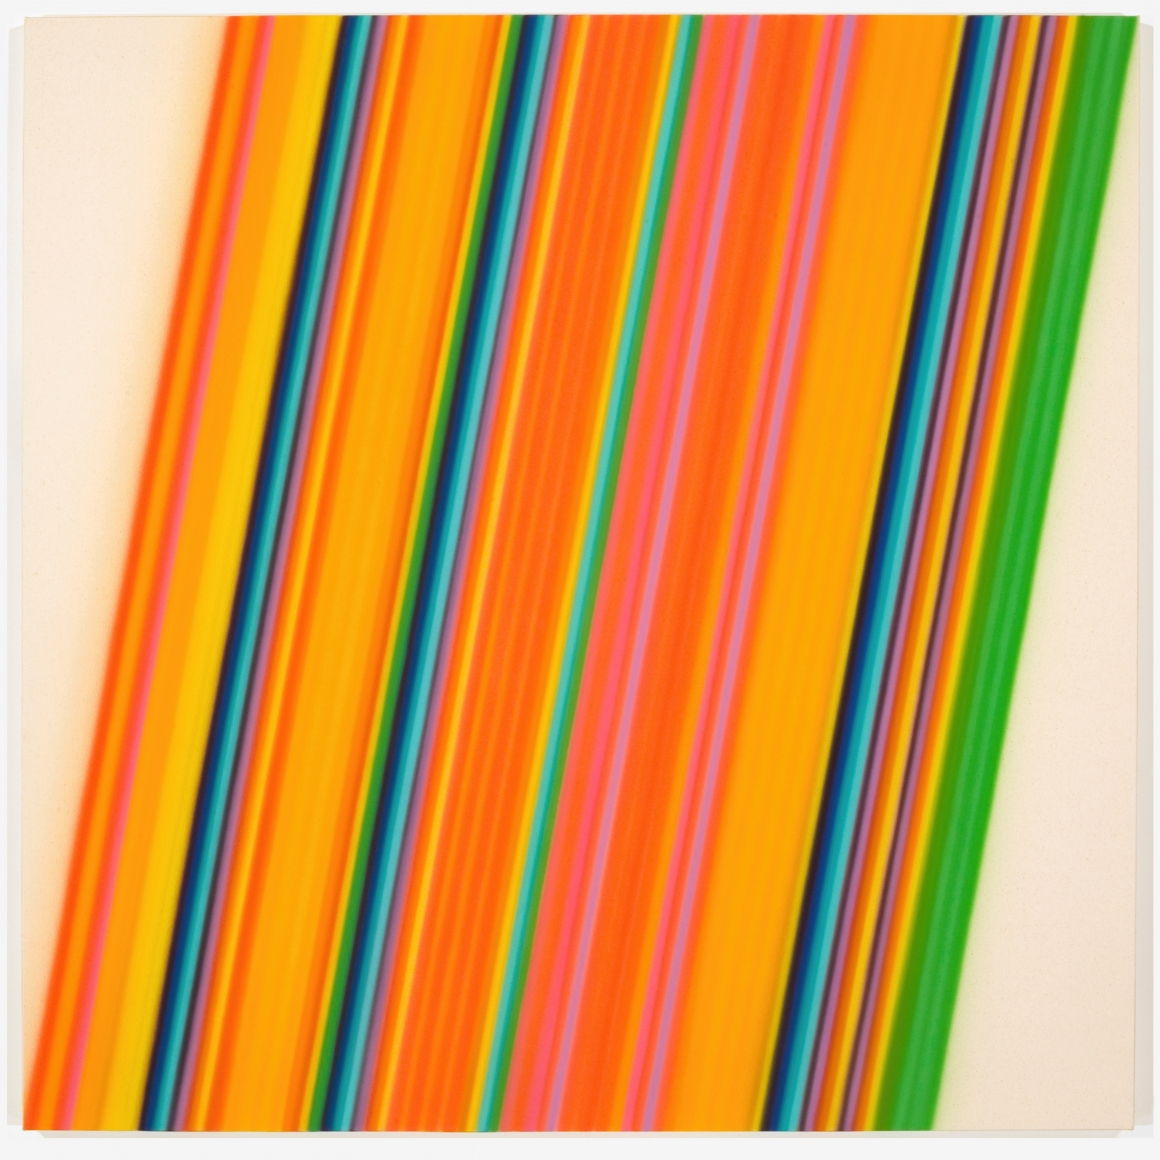 (What's the frequency) Kenneth?, 2009, Synthetic polymer on canvas